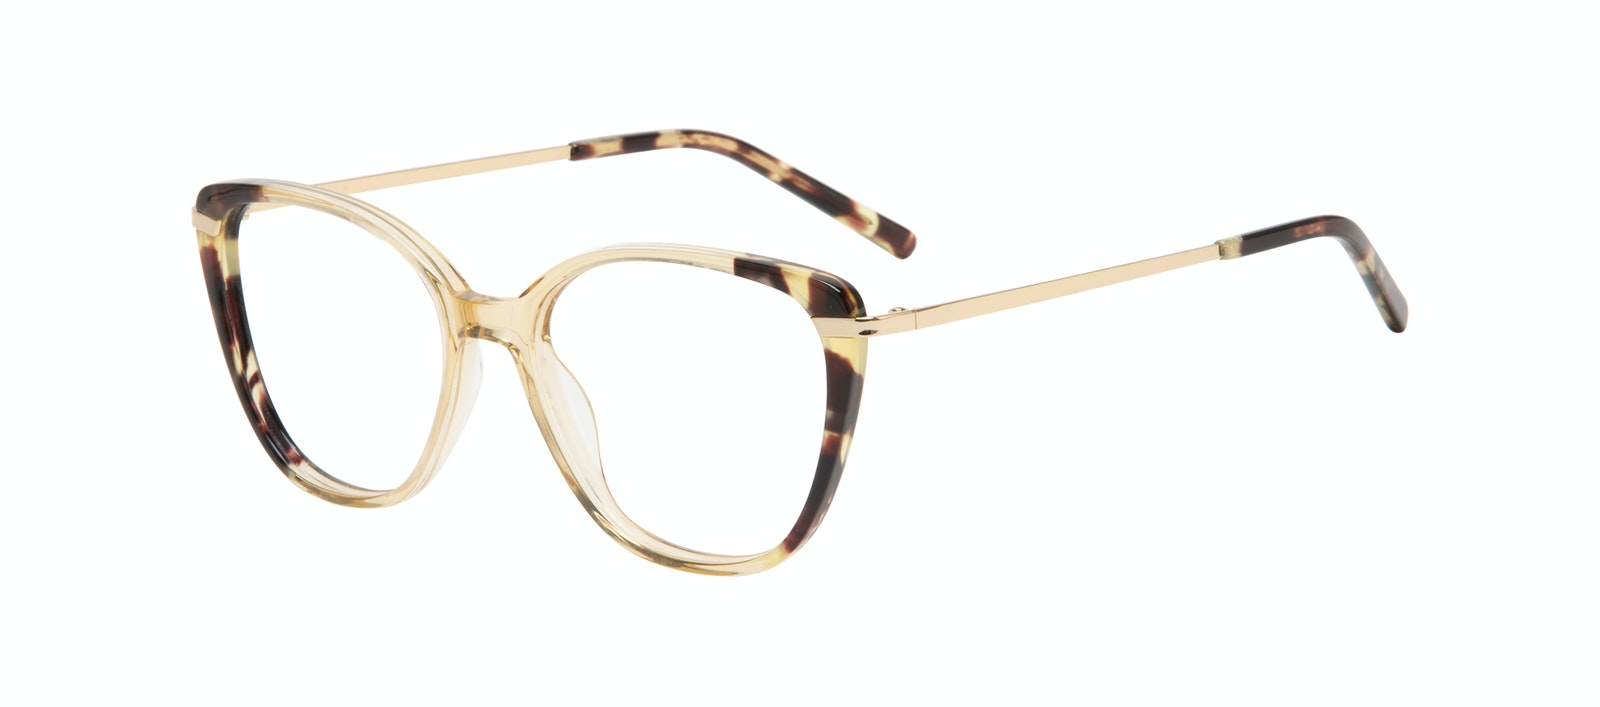 Affordable Fashion Glasses Rectangle Square Eyeglasses Women Illusion Golden Tort Tilt